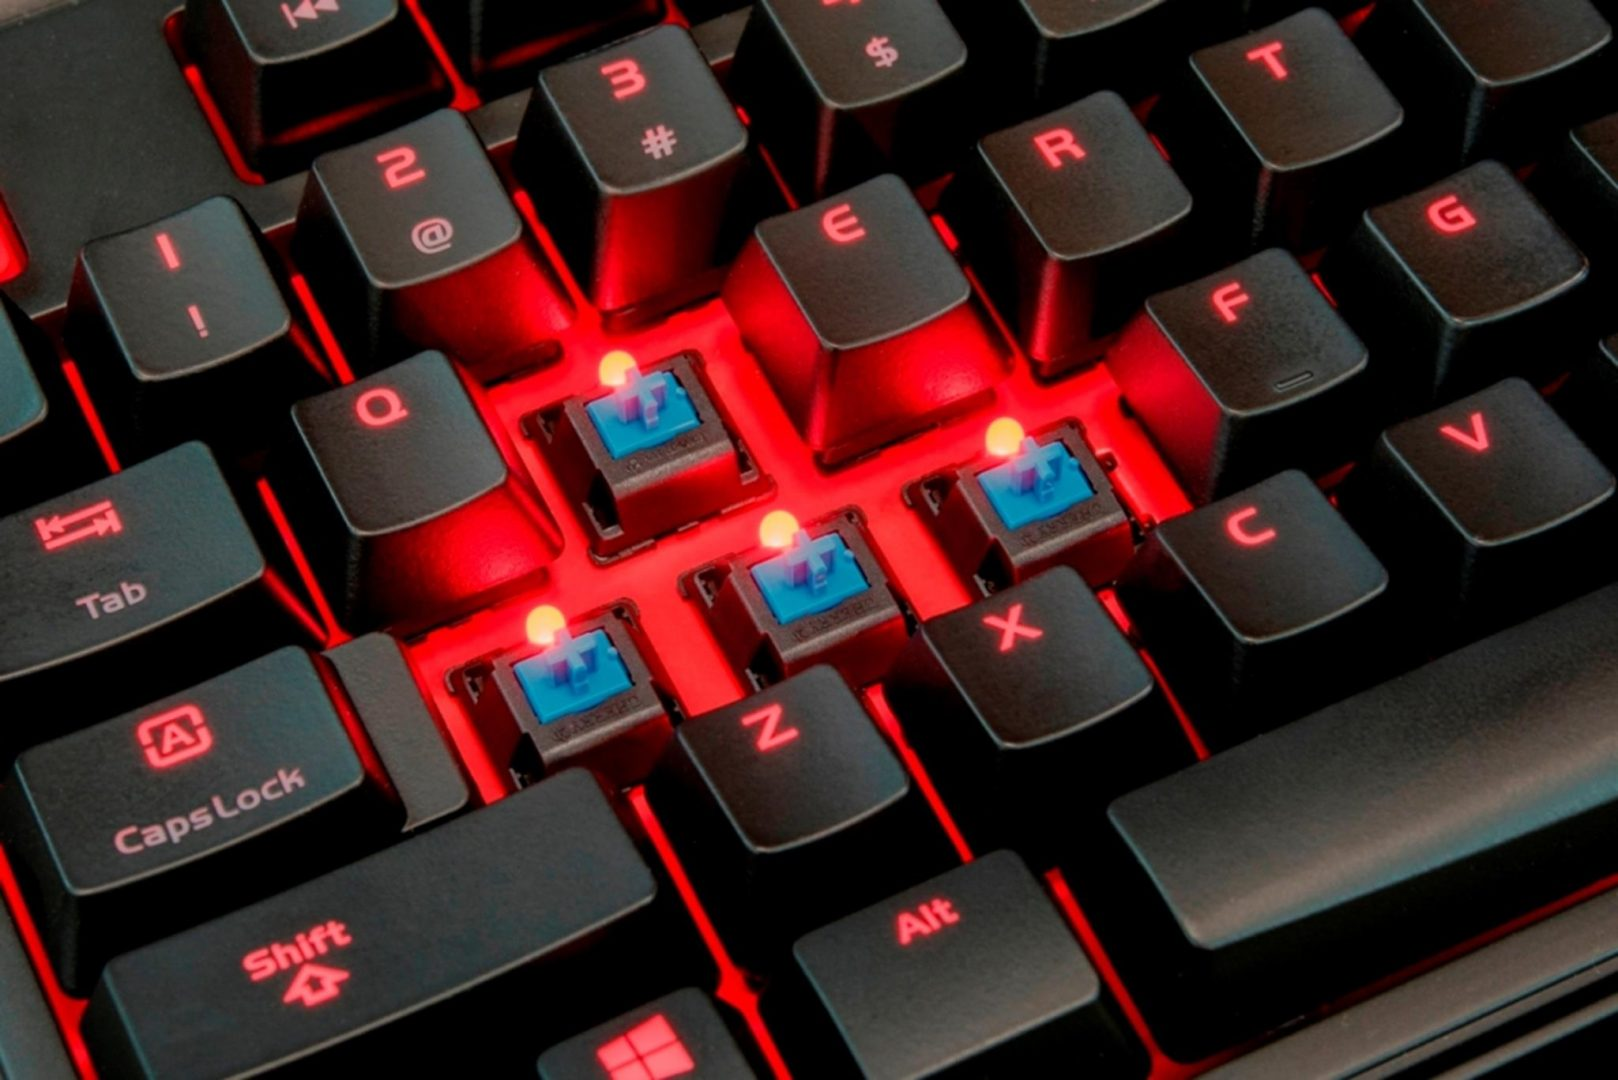 tt-esports-meka-pro-cherry-mx-mechanical-gaming-keyboard-with-on-the-fly-macro-record-function